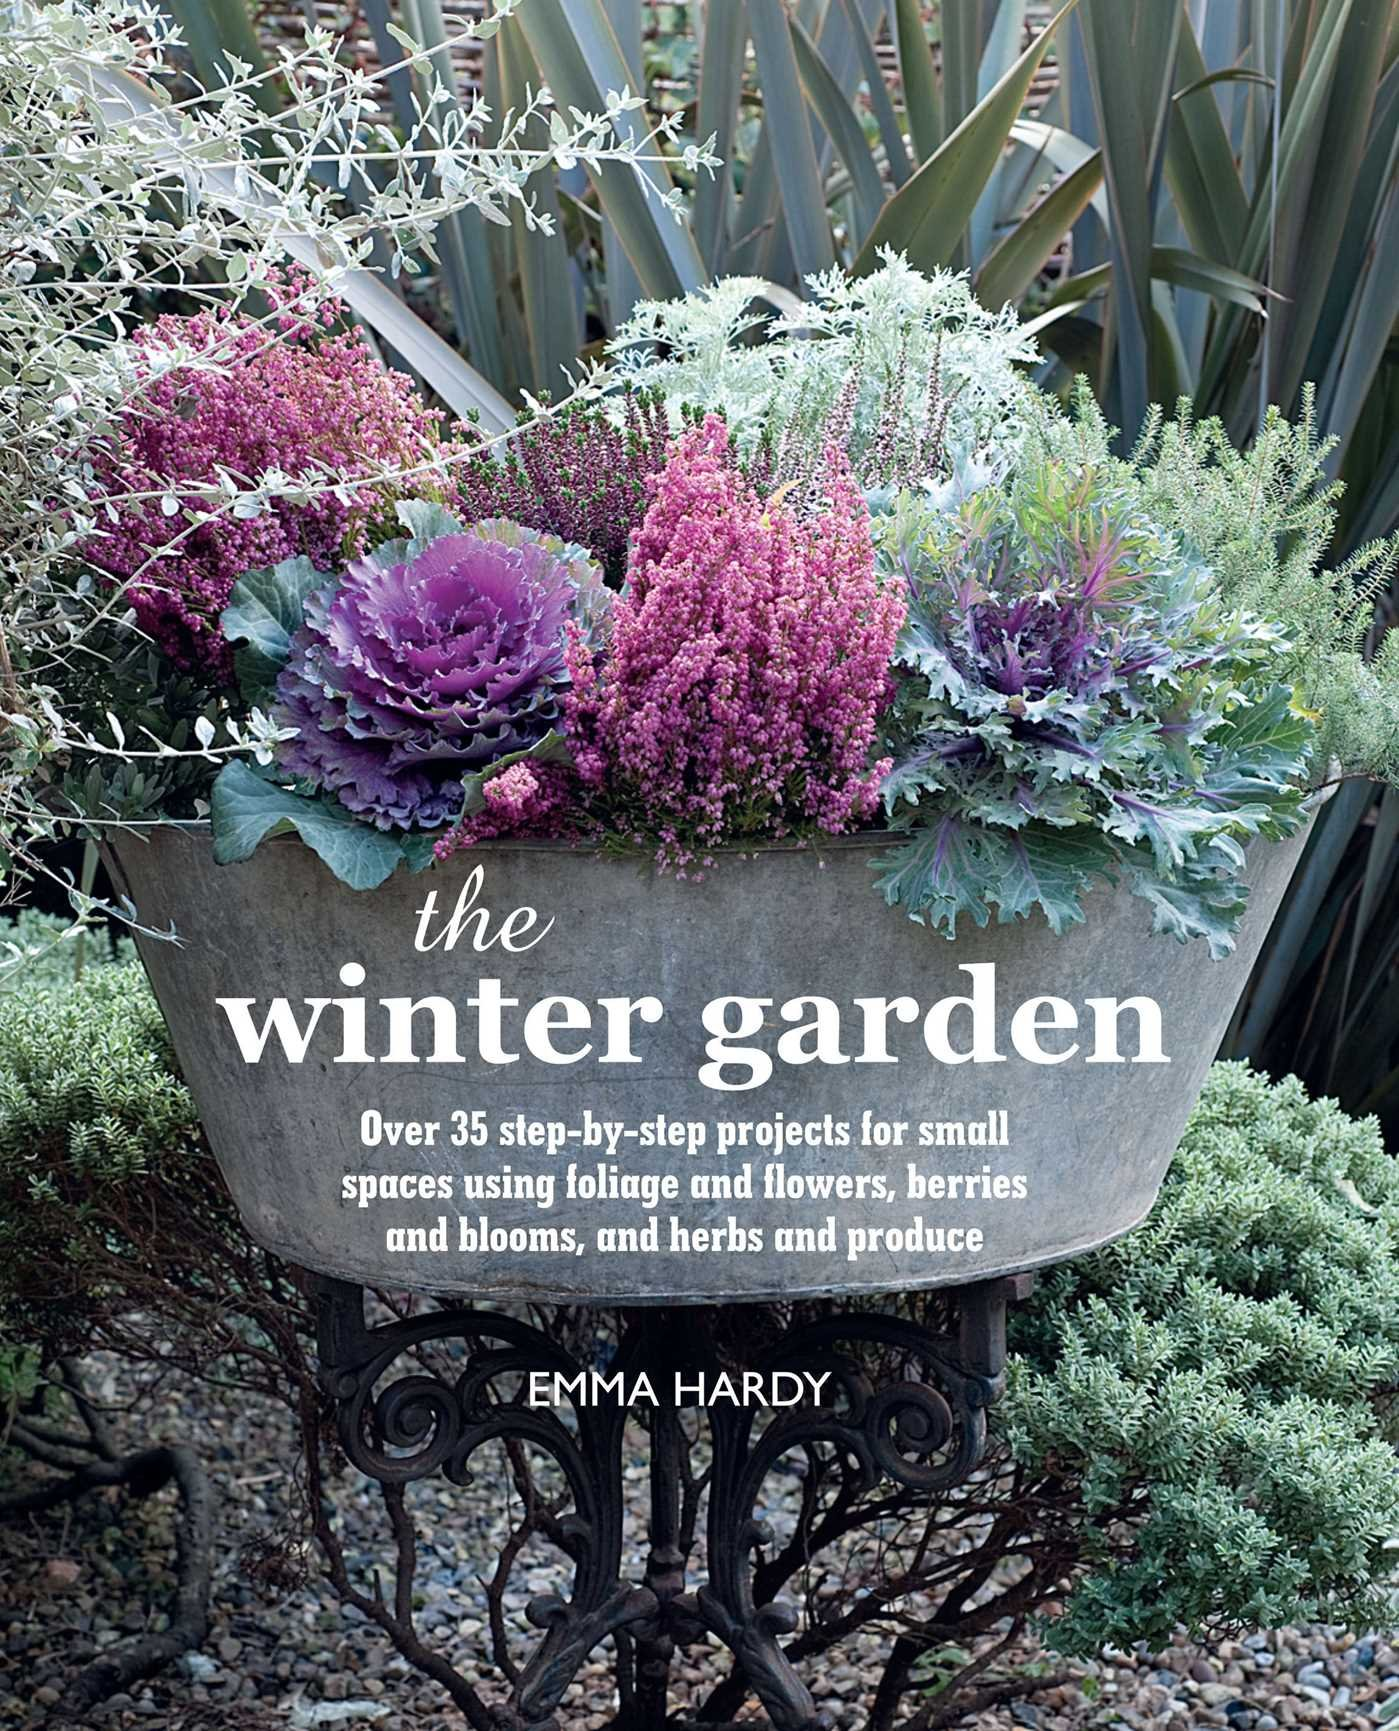 the winter garden over 35 step by step projects for small spaces using foliage and flowers berries and blooms and herbs and produce emma hardy - Winter Garden Book